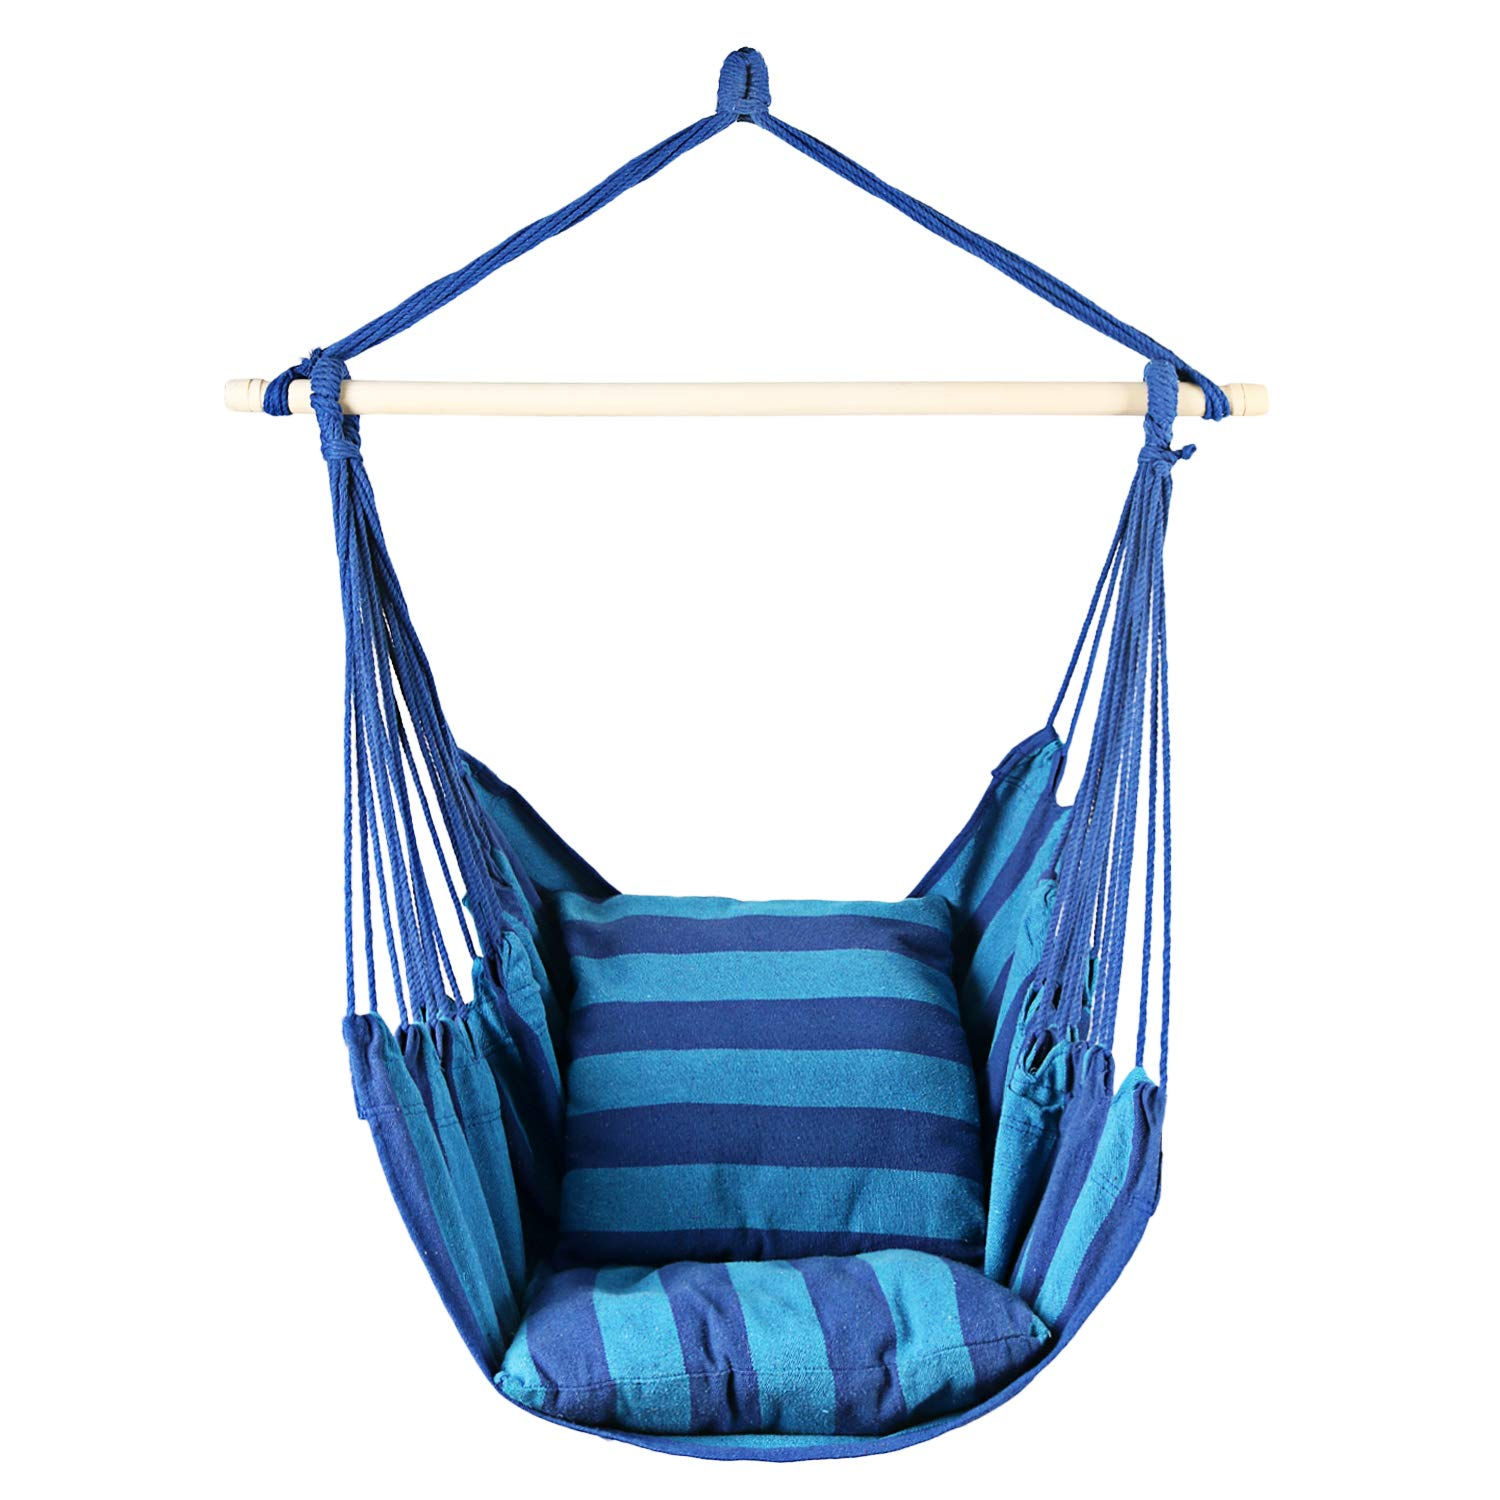 Bathonly Hanging Hammock Chair, Swing Chair with 2-Seat Cushions for Indoor and Outdoor